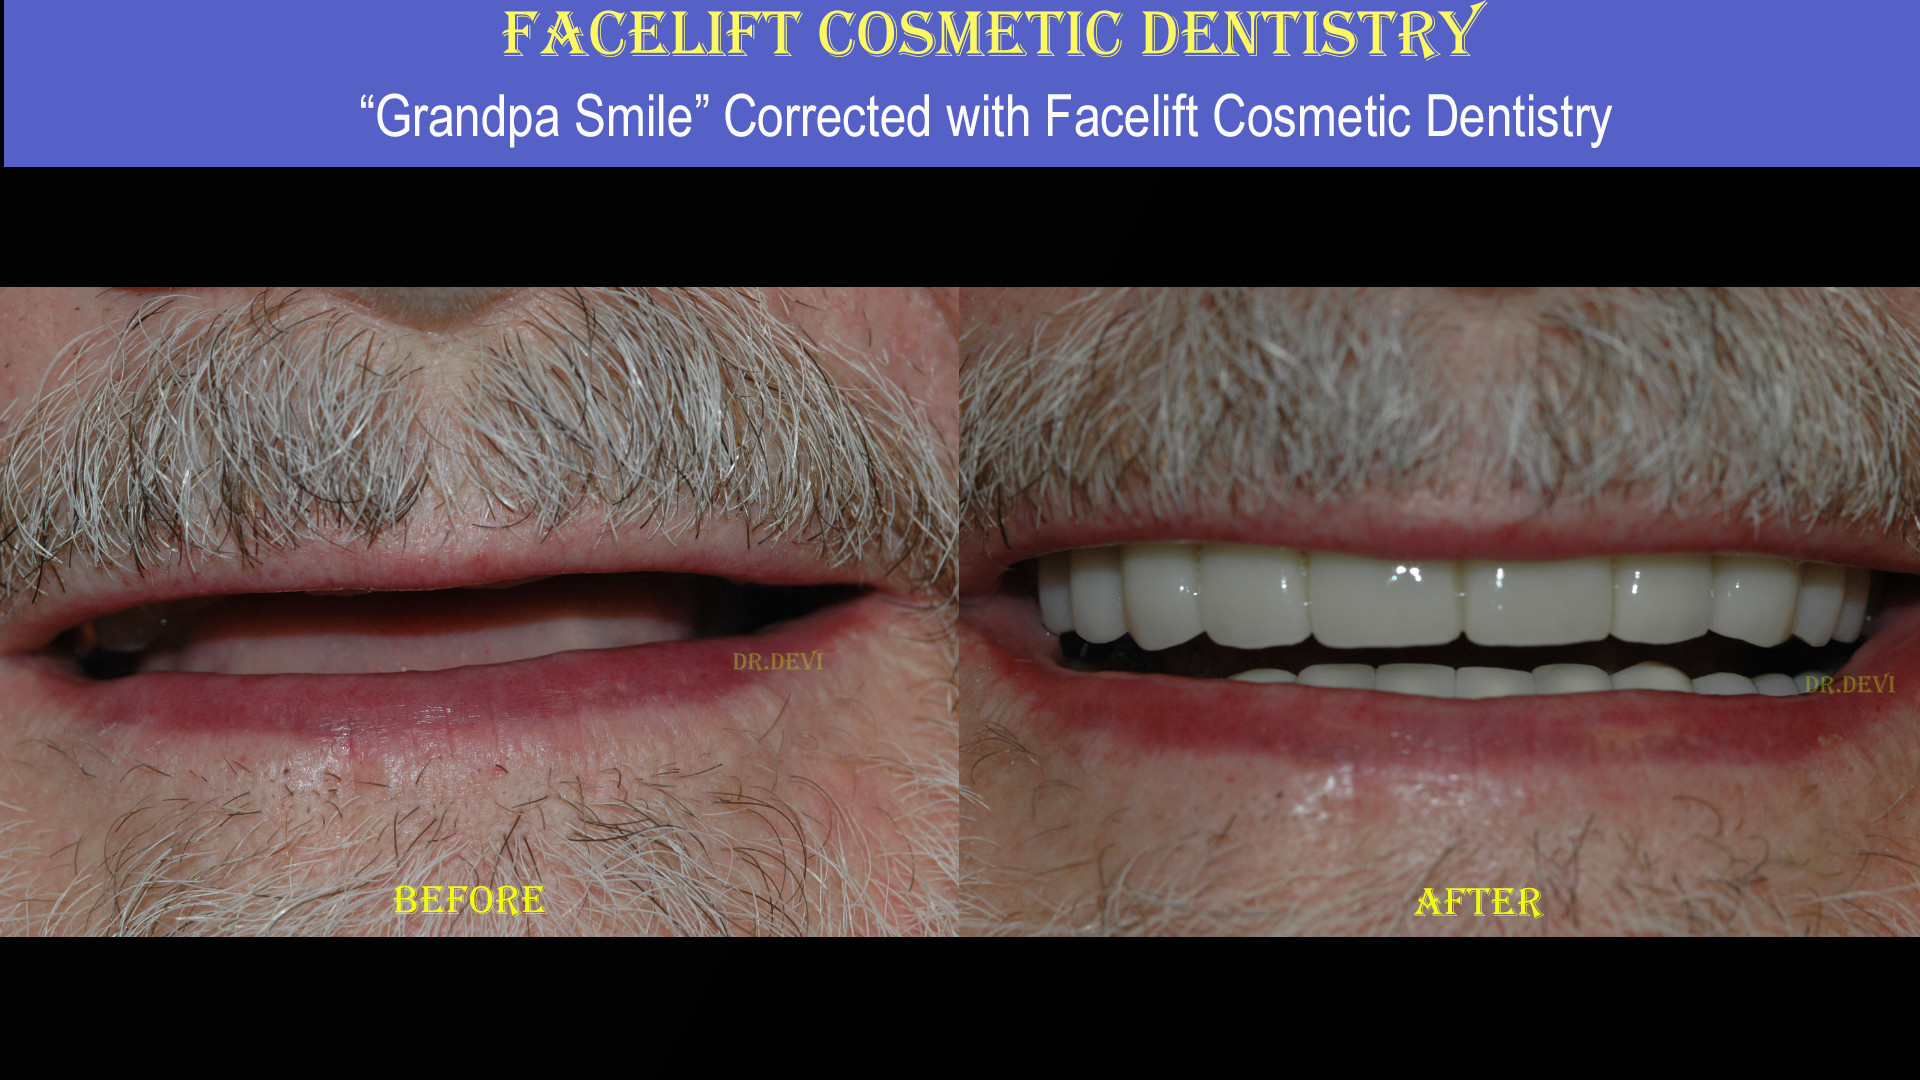 Facelift Cosmetic Dentistry